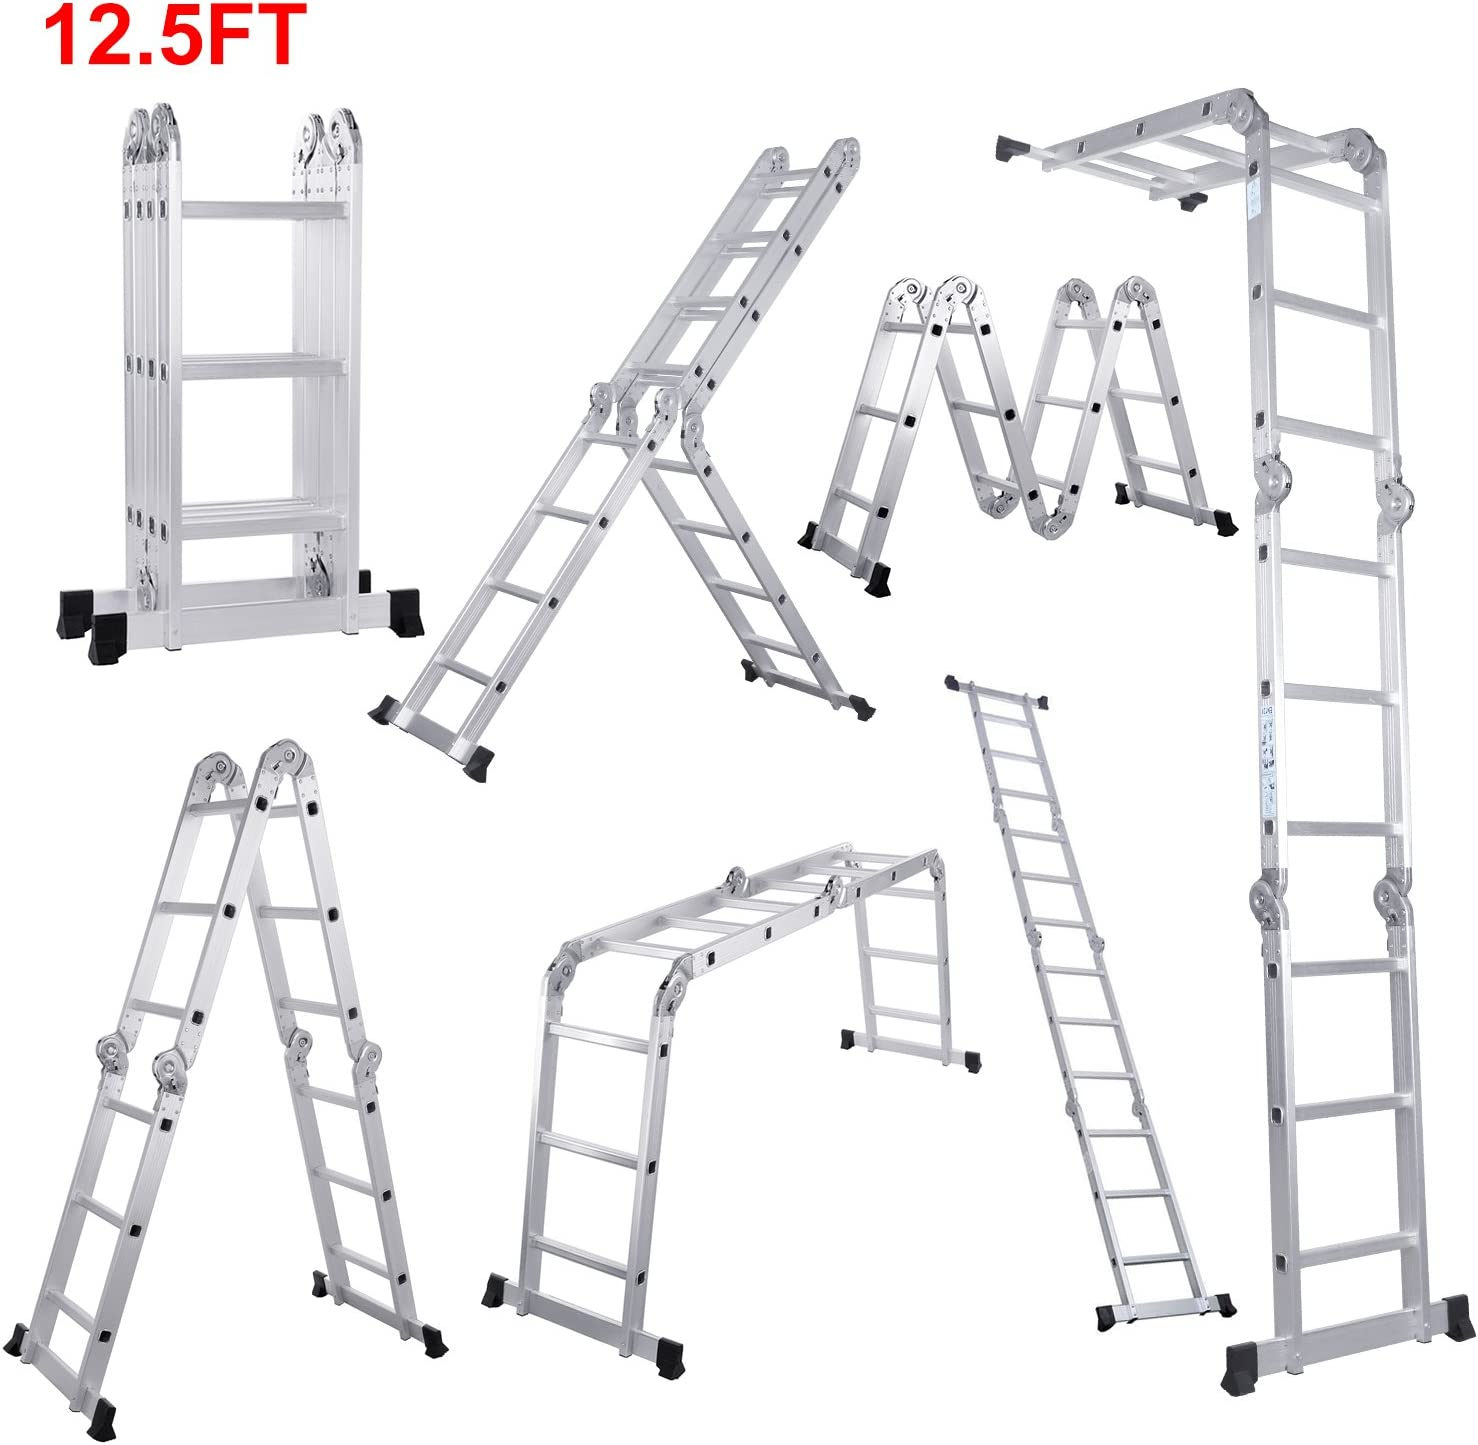 Lifewit Folding 7-in-1 Multi-Function Extendable Ladder